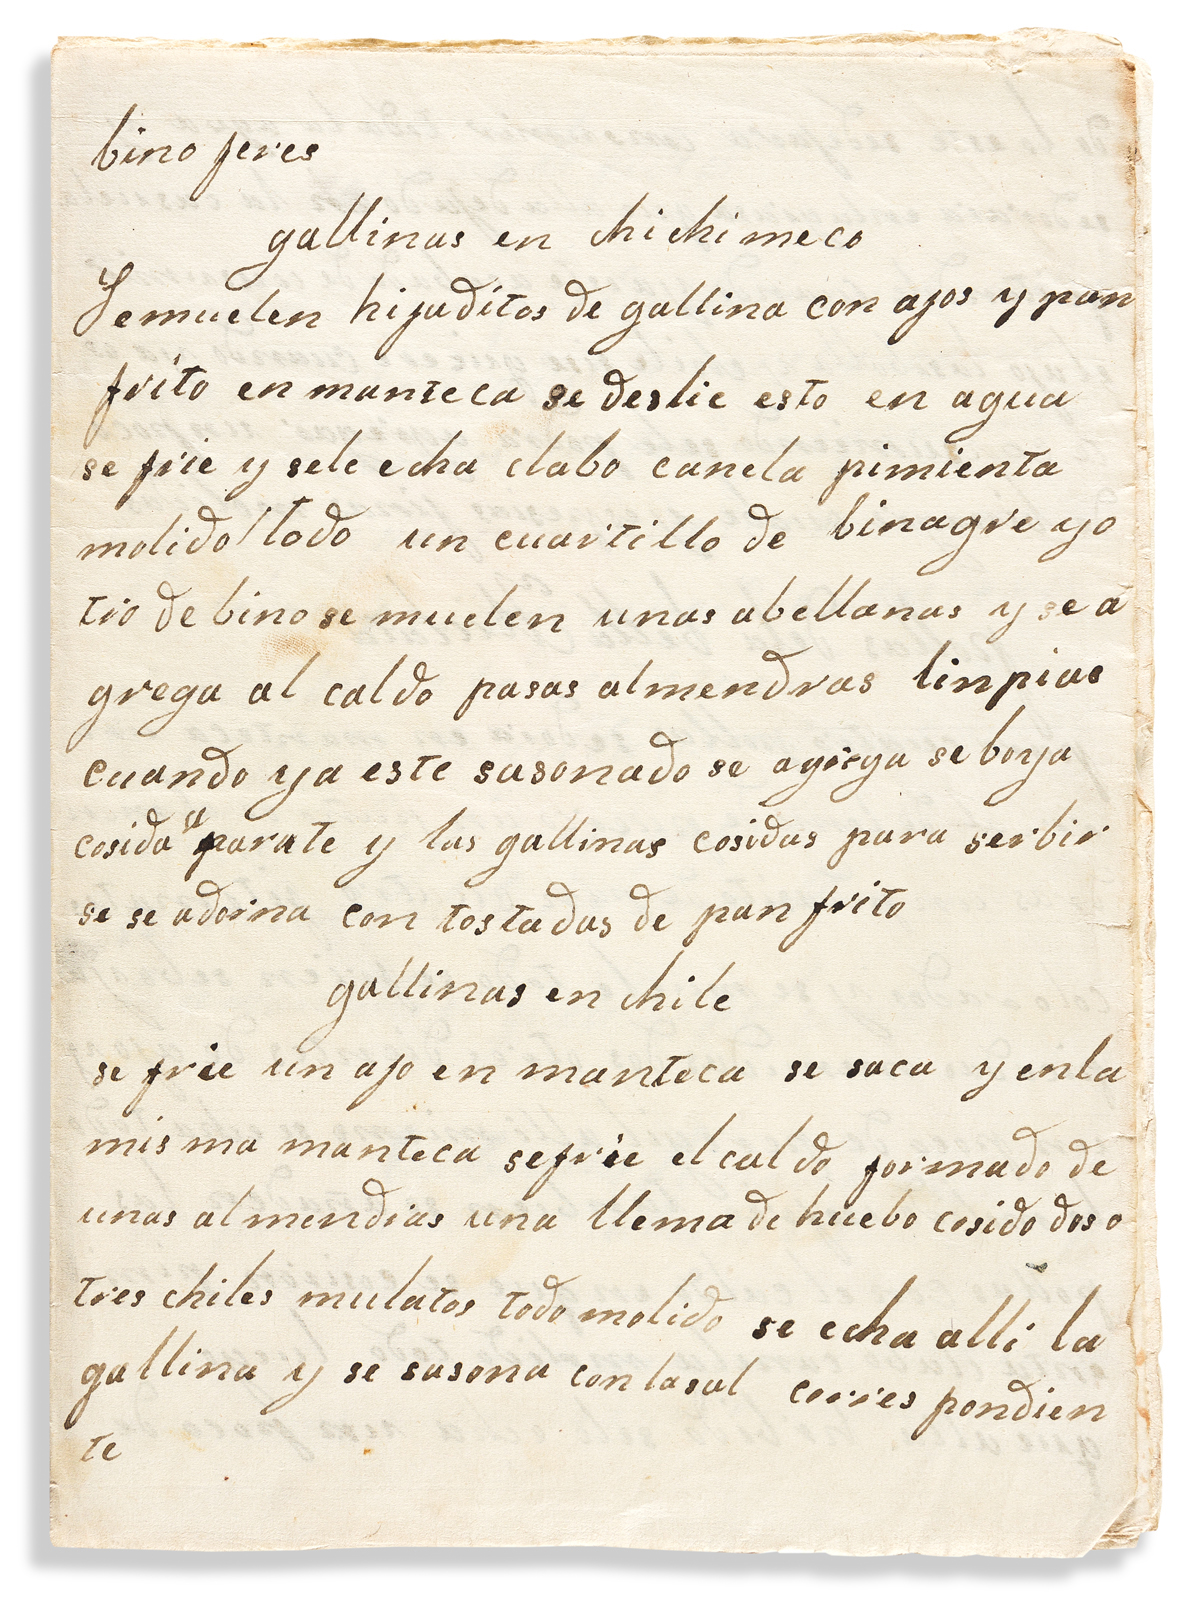 (MEXICAN COOKERY.) Group of 3 early Mexican manuscript cookbooks.